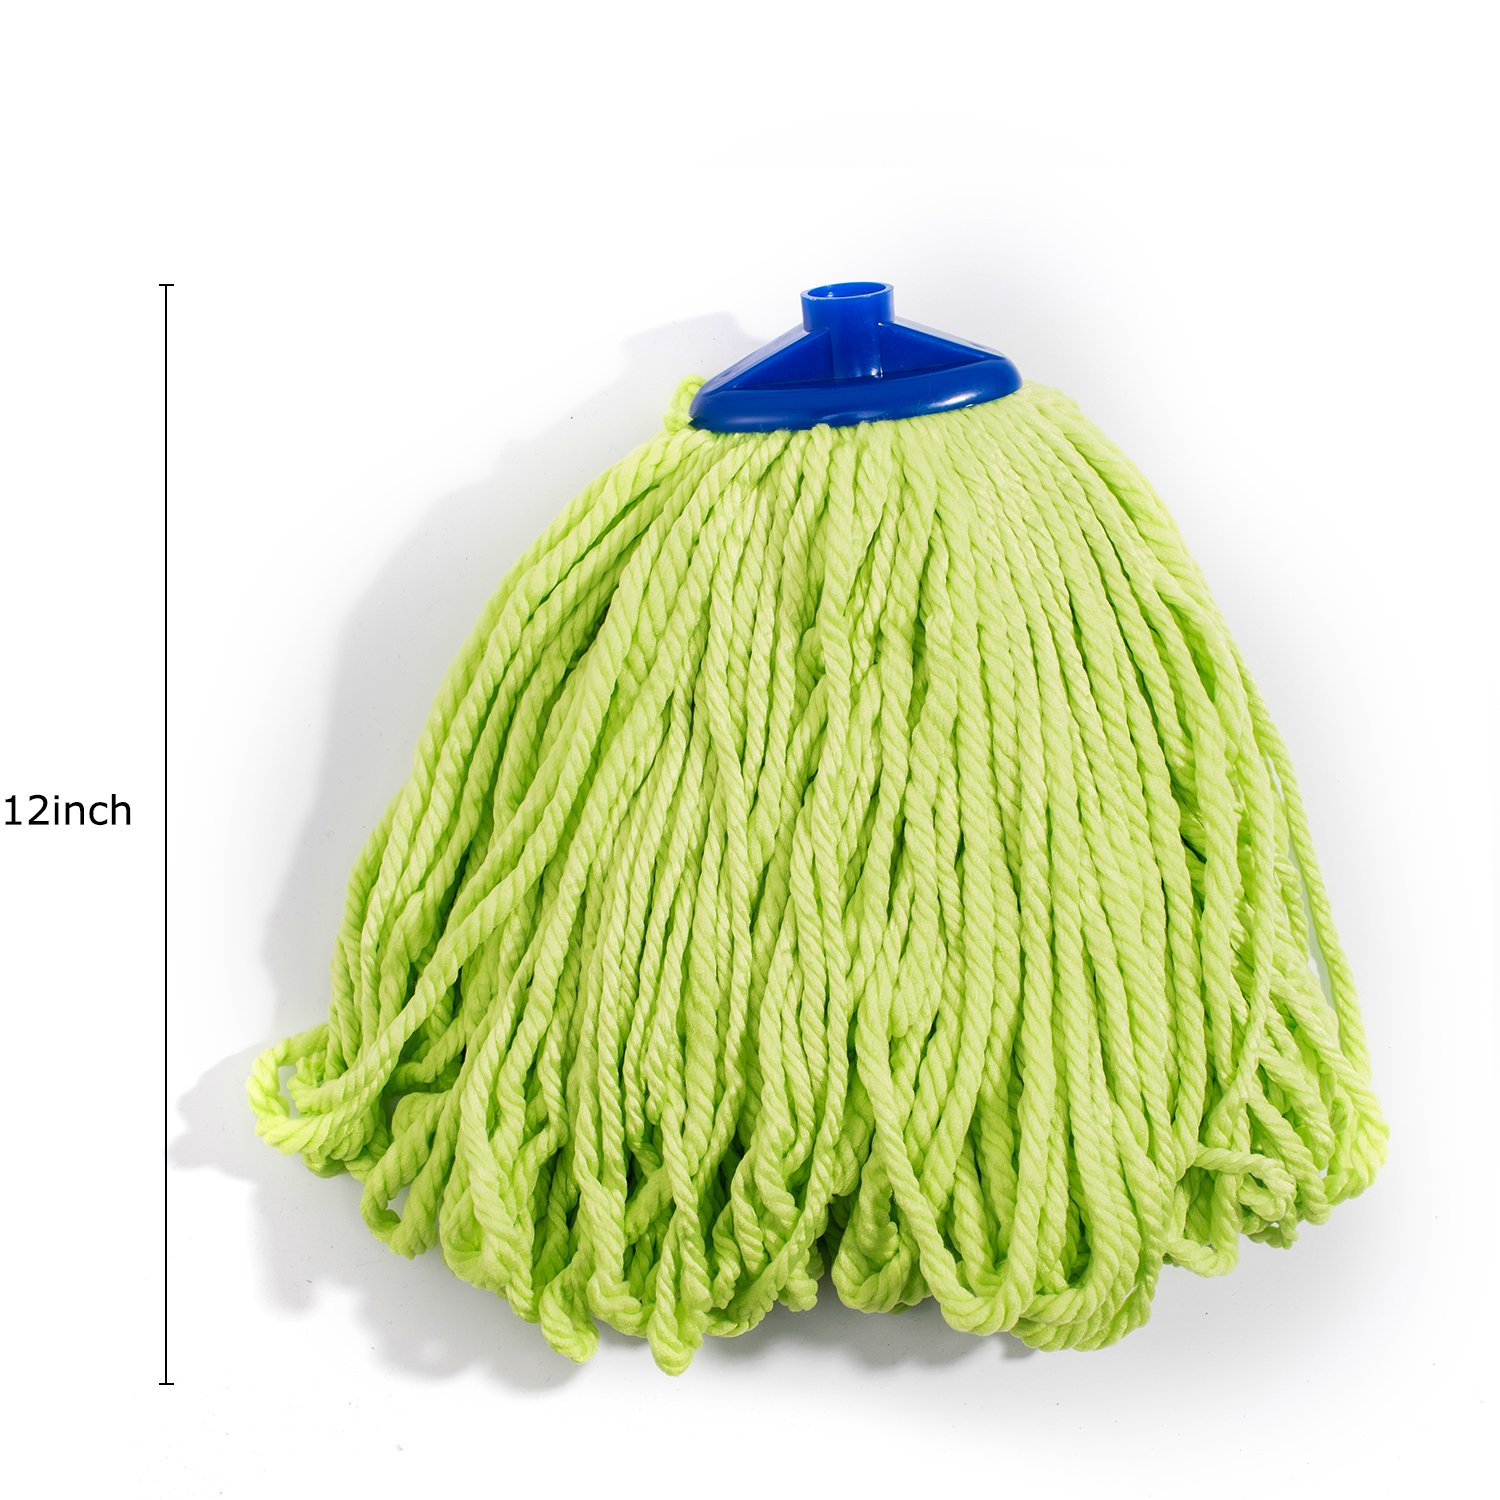 QIPENG 12'' Professional Microfiber Mop Head 4 Pack, Washable Wet and Dry Mop Heads, Super Absorbent Mop (Green) by QIPENG (Image #2)